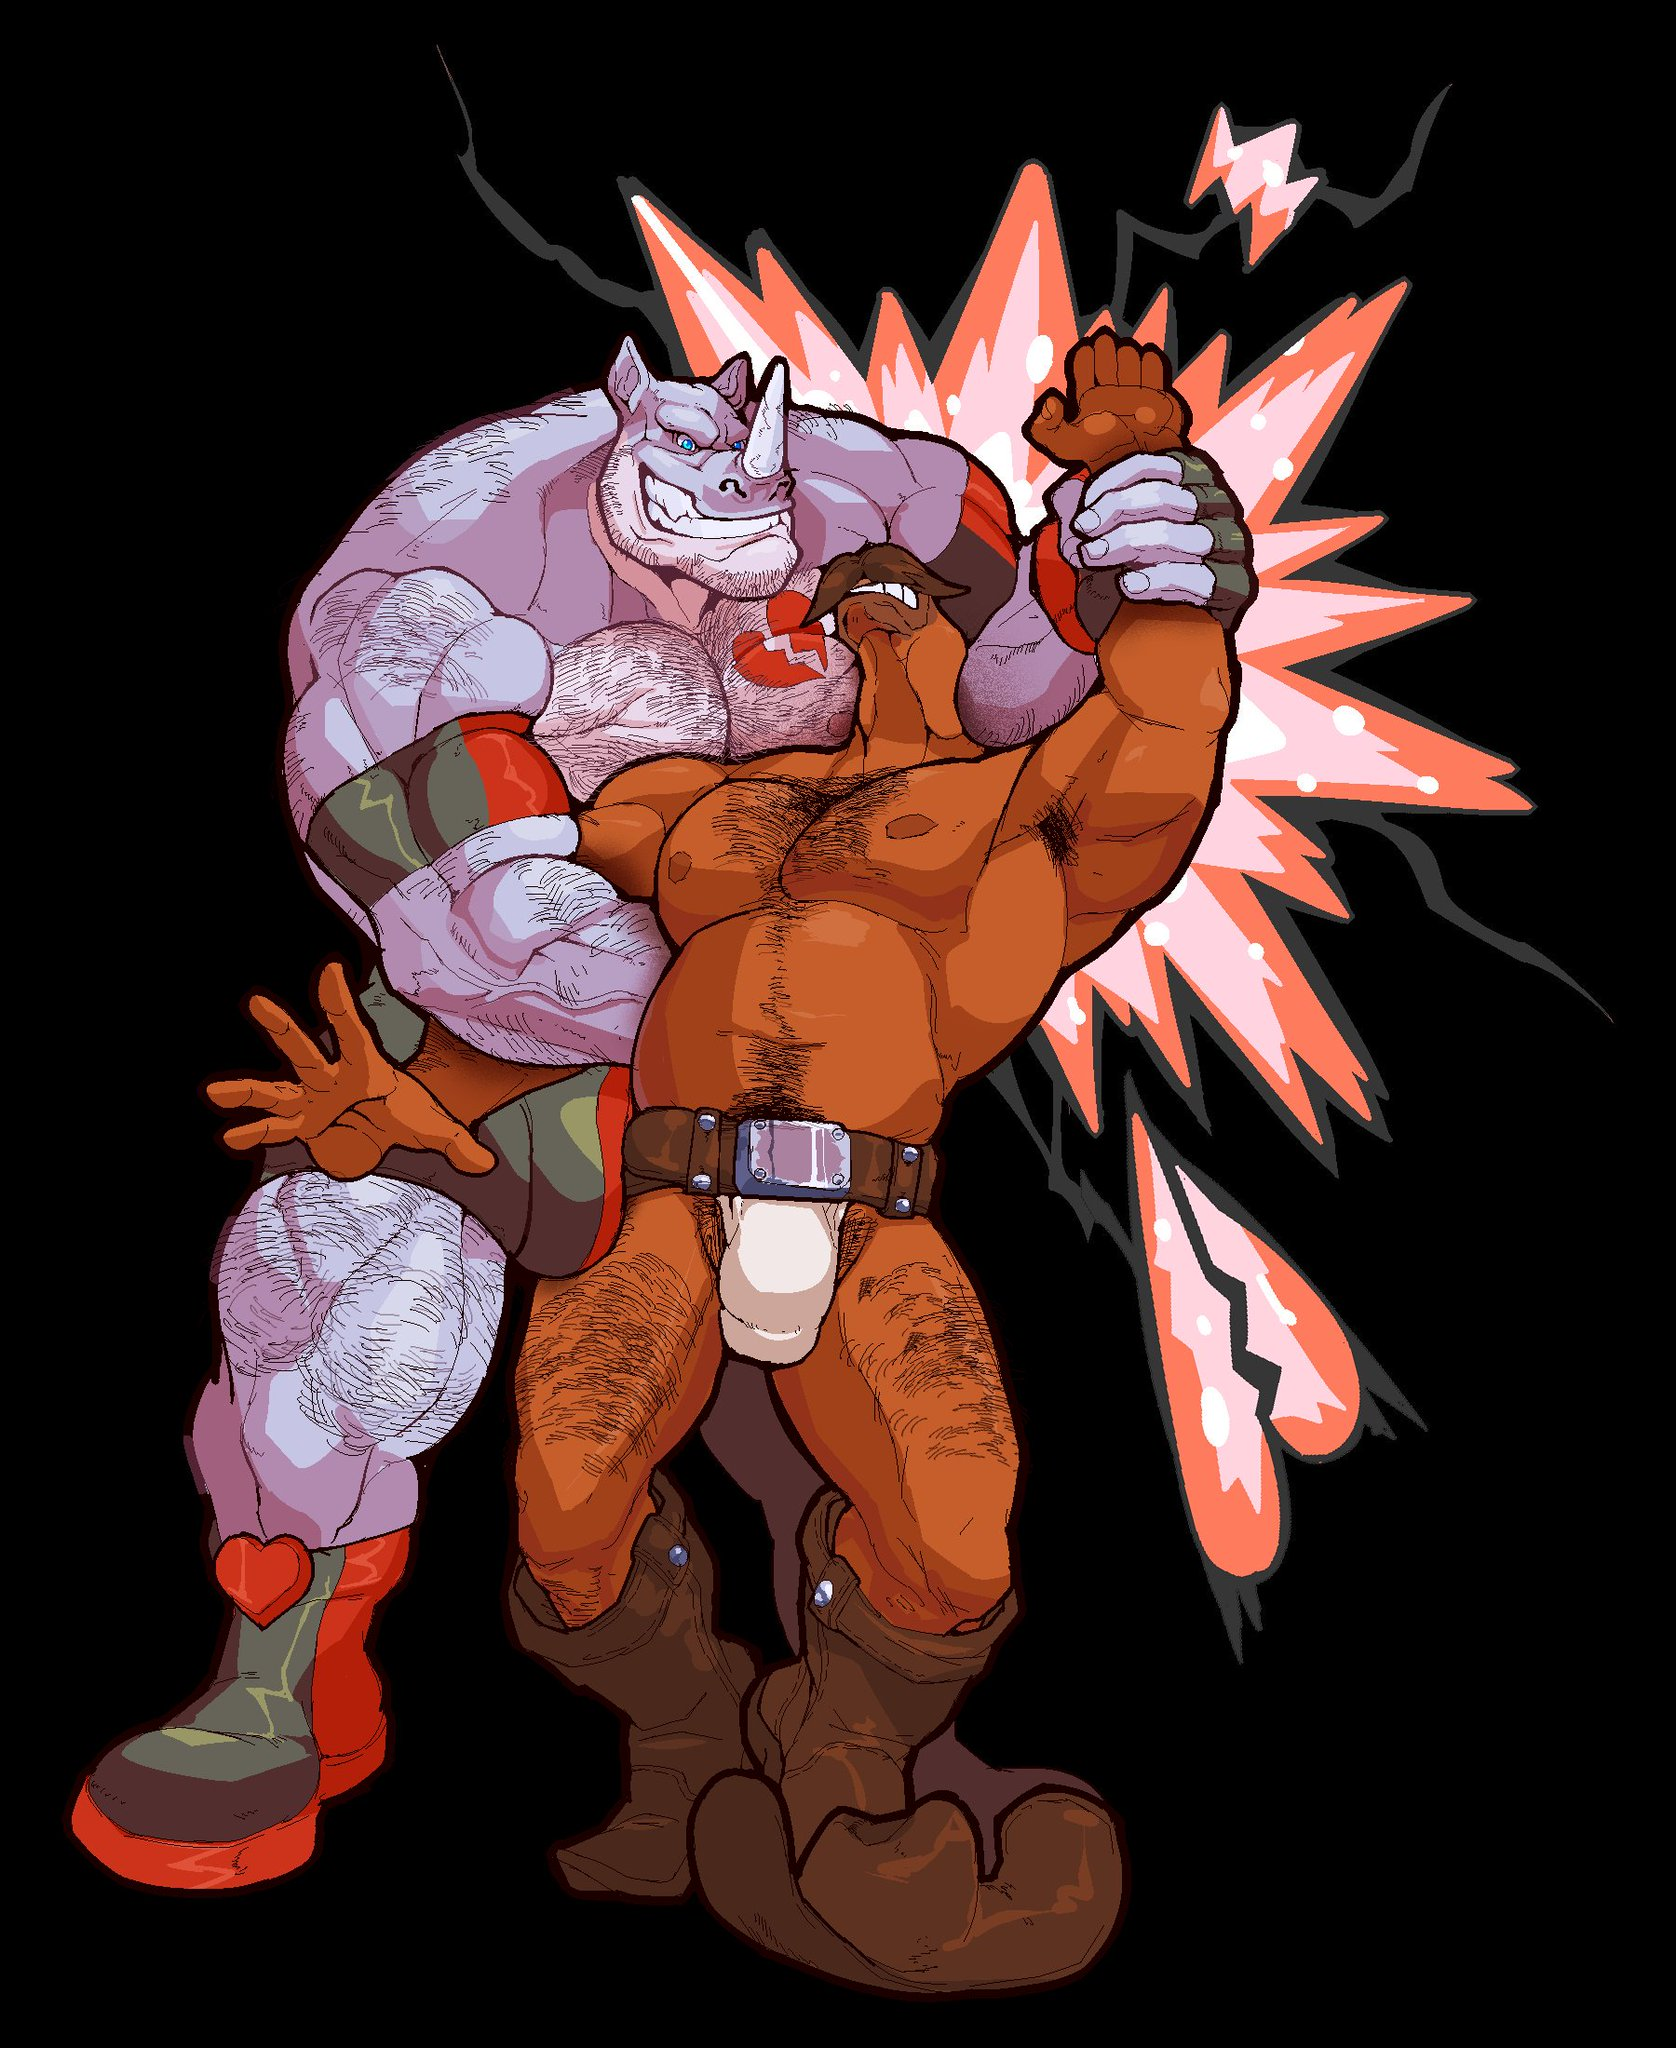 Awsome pic by the fizzy master Reggi got poor carl in a sleeper hold  @floatiesoda https://t.co/bcTU1lP80H